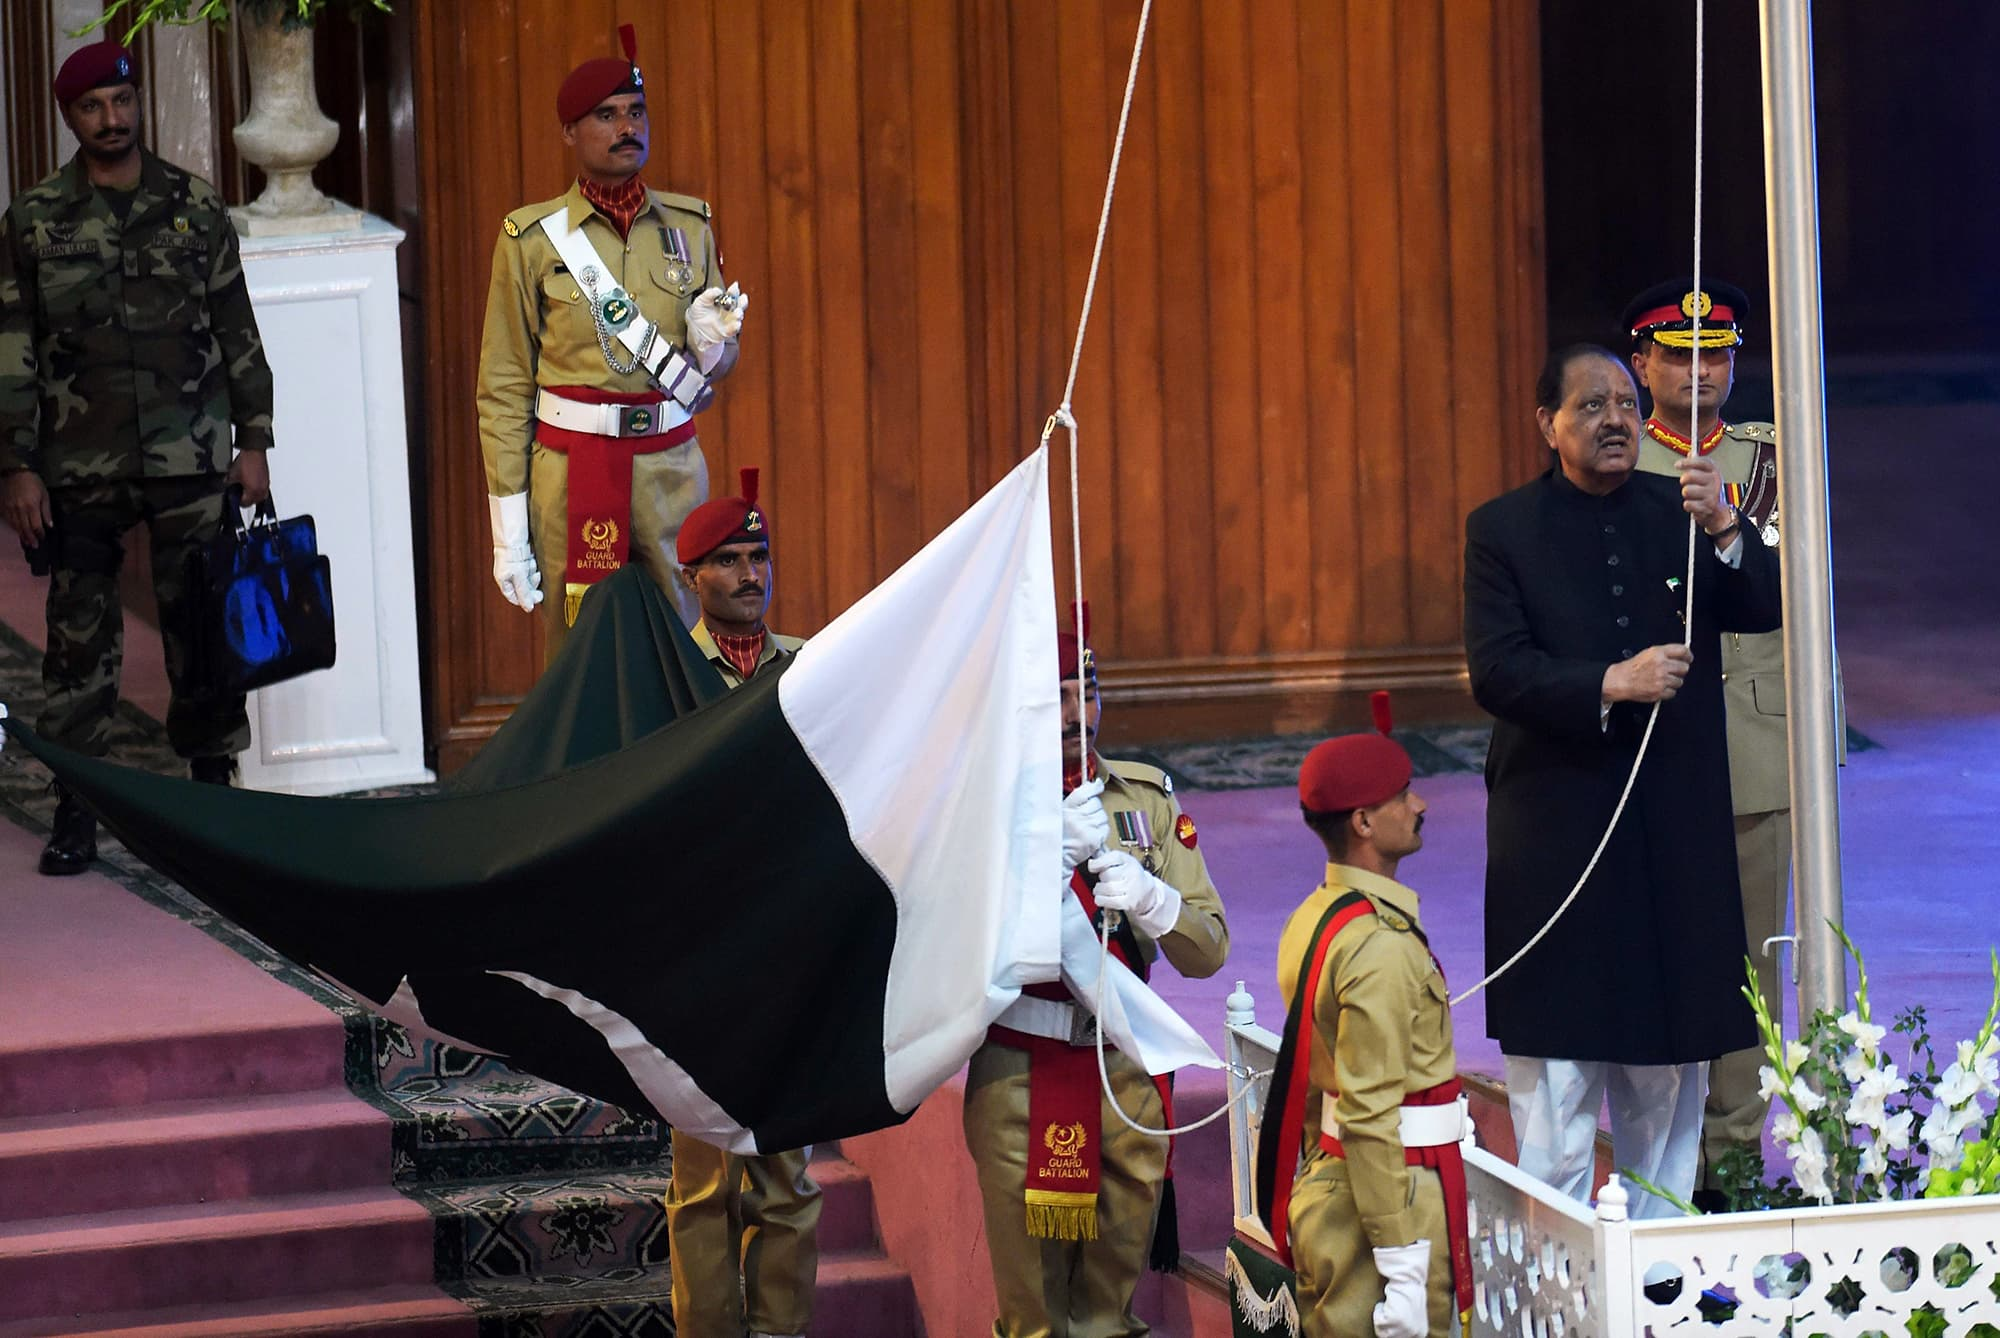 President Mamnoon Hussain hoists the national flag during a ceremony to mark Independence Day in Islamabad. — AFP